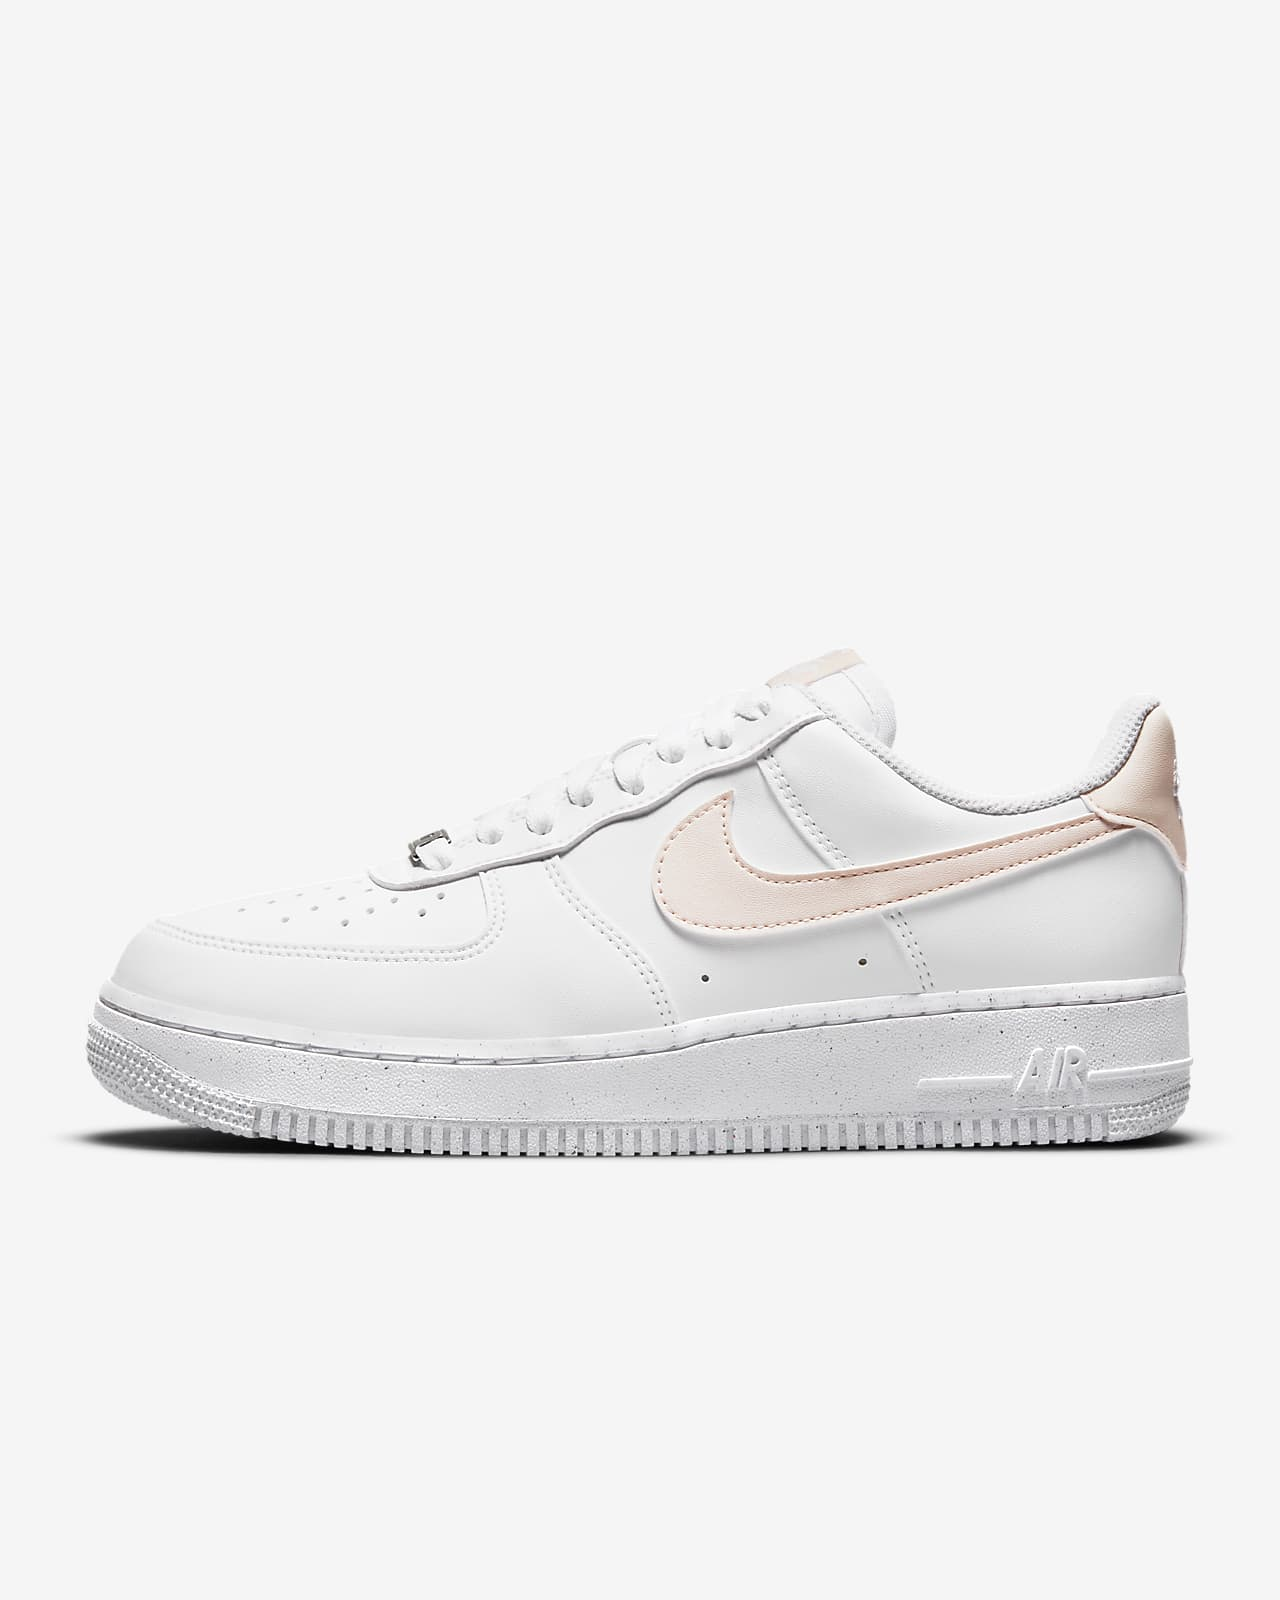 Chaussures Nike Air Force 1 '07 Next Nature pour Femme